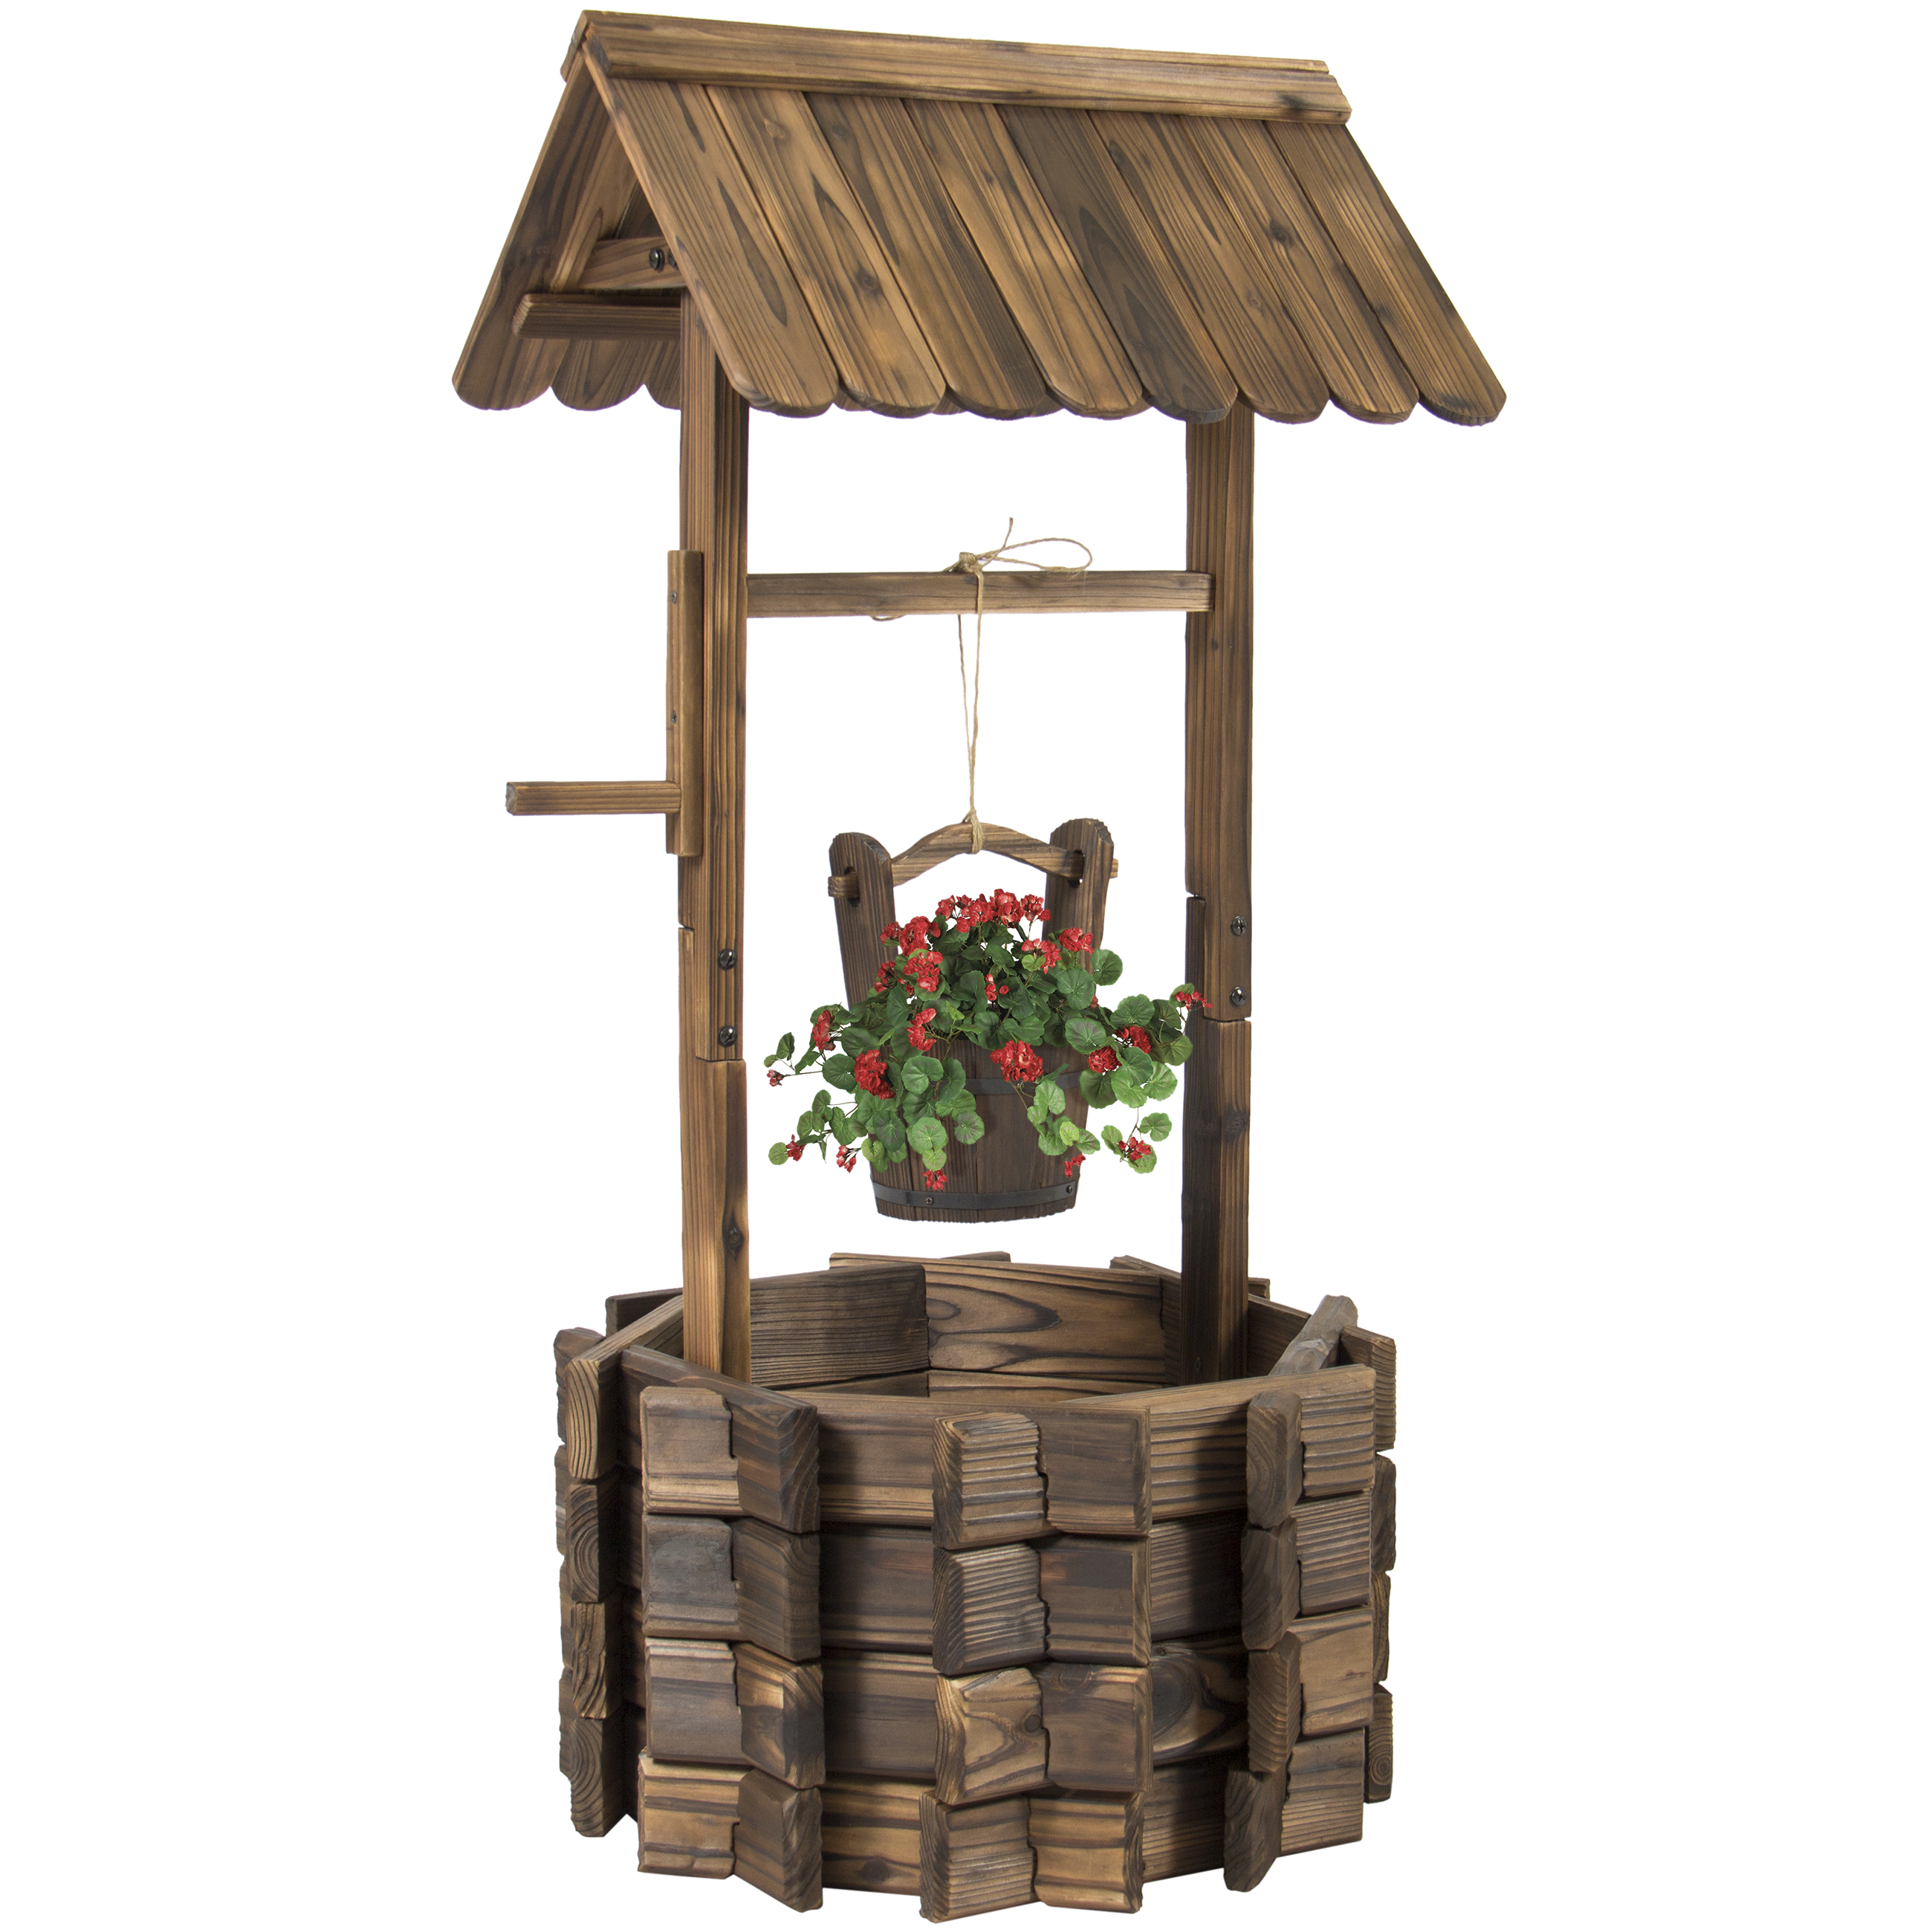 Garden designs with bridges and wishing wells landscaping ideas - Wooden Wishing Well Bucket Flower Planter Patio Garden Outdoor Home Decor Walmart Com